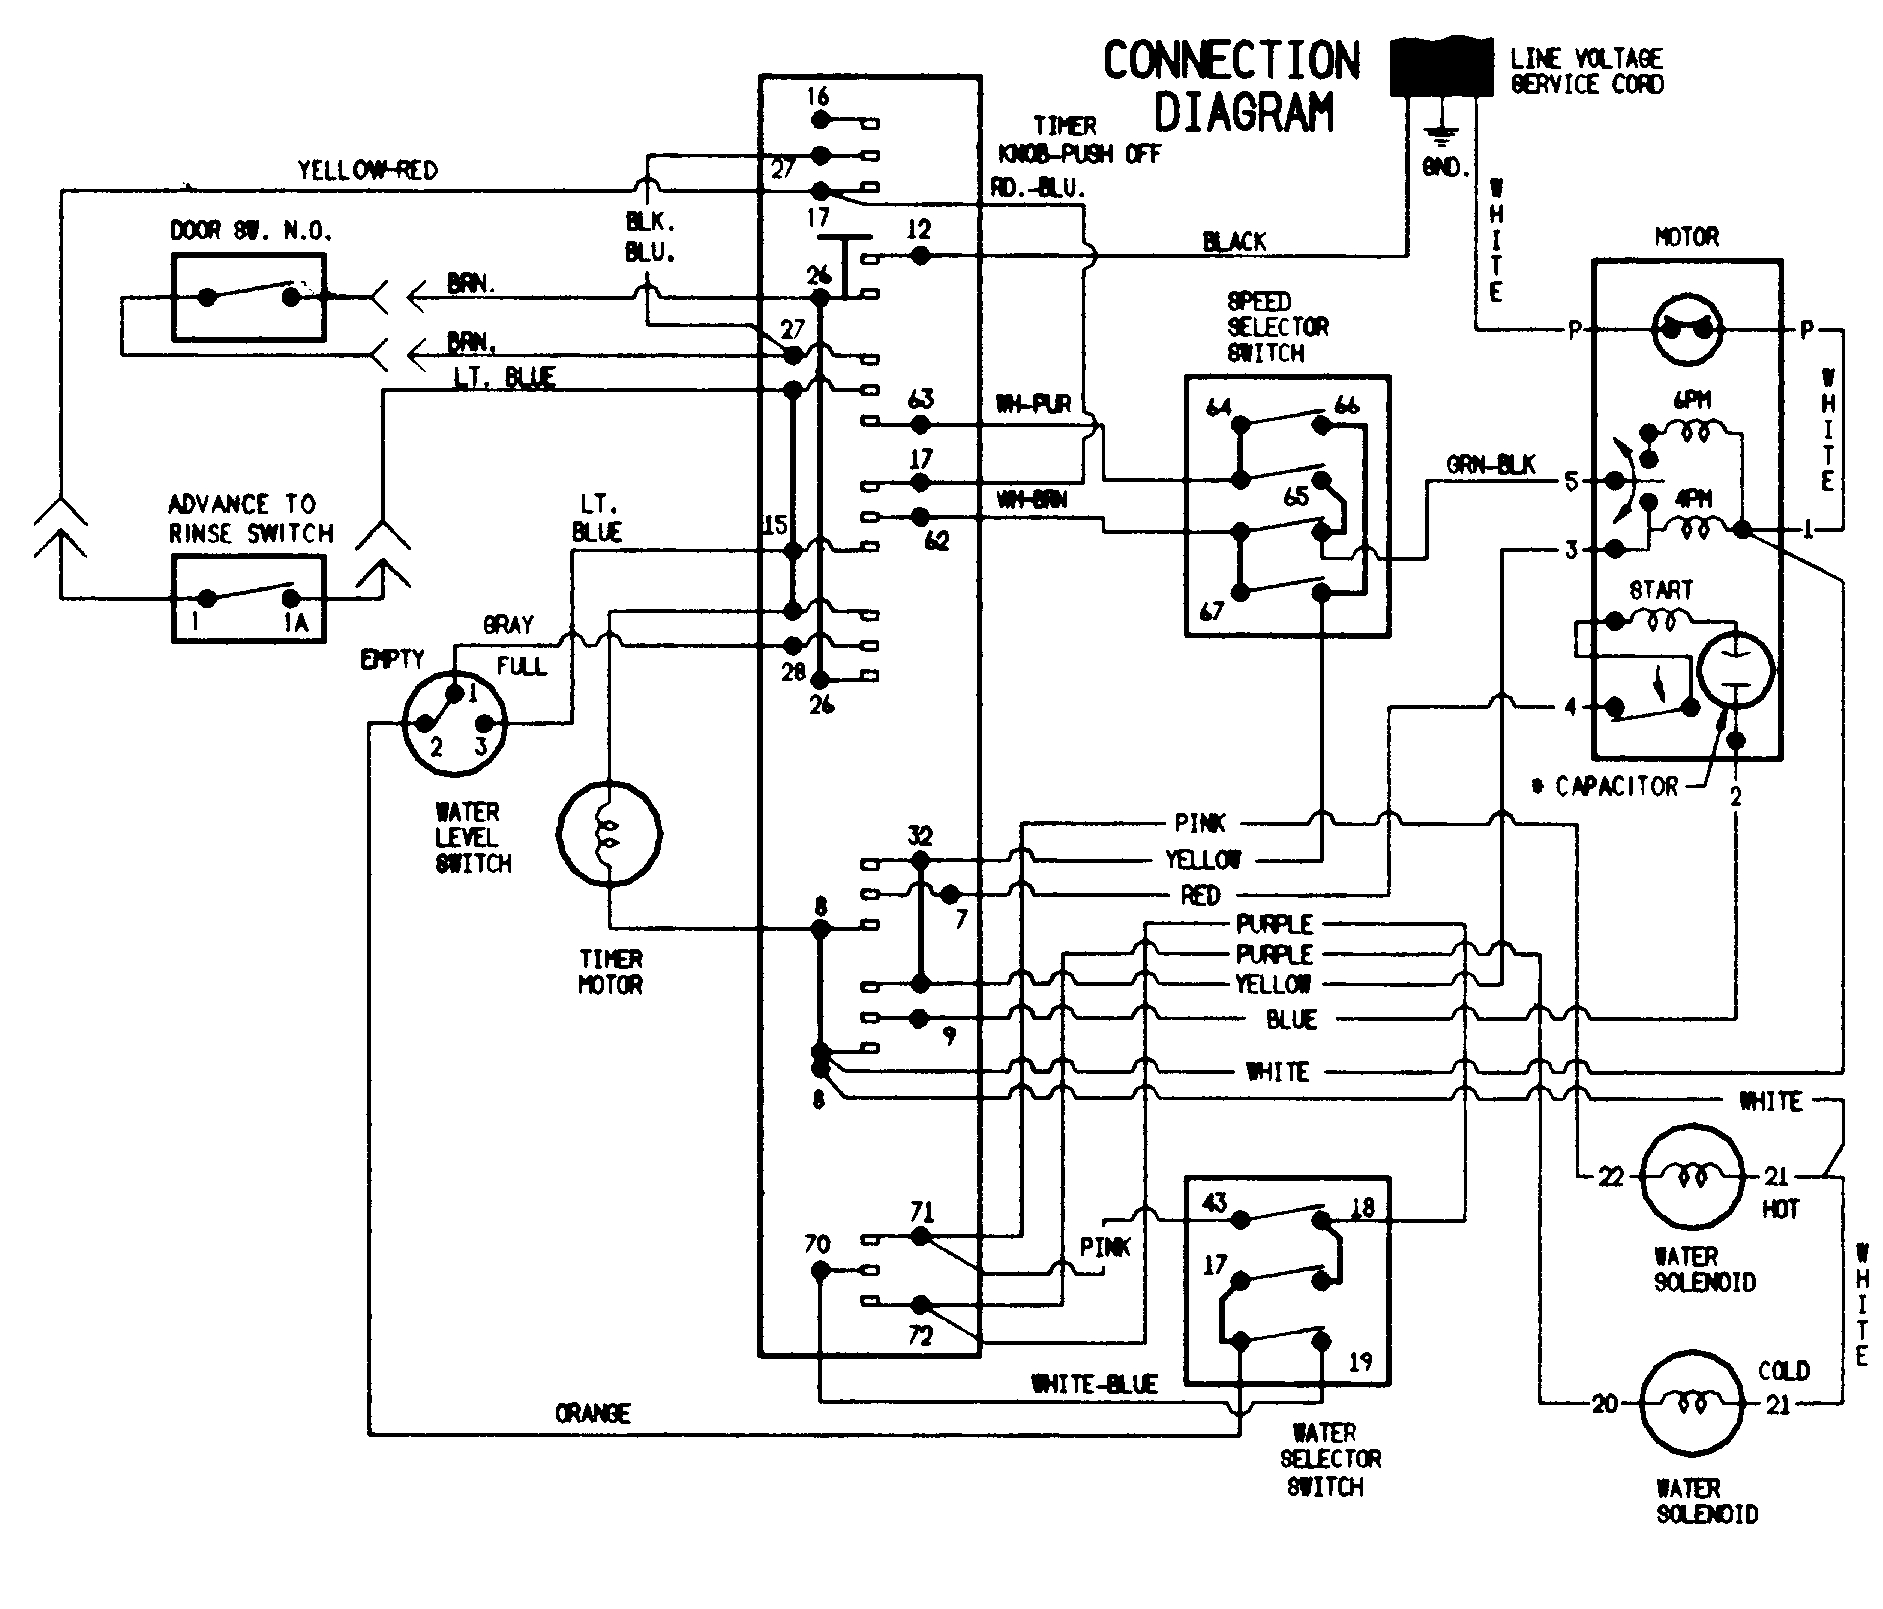 dryer parts wiring diagram kenmore 80 series dryer parts diagram | automotive parts ... dryer parts wiring diagram